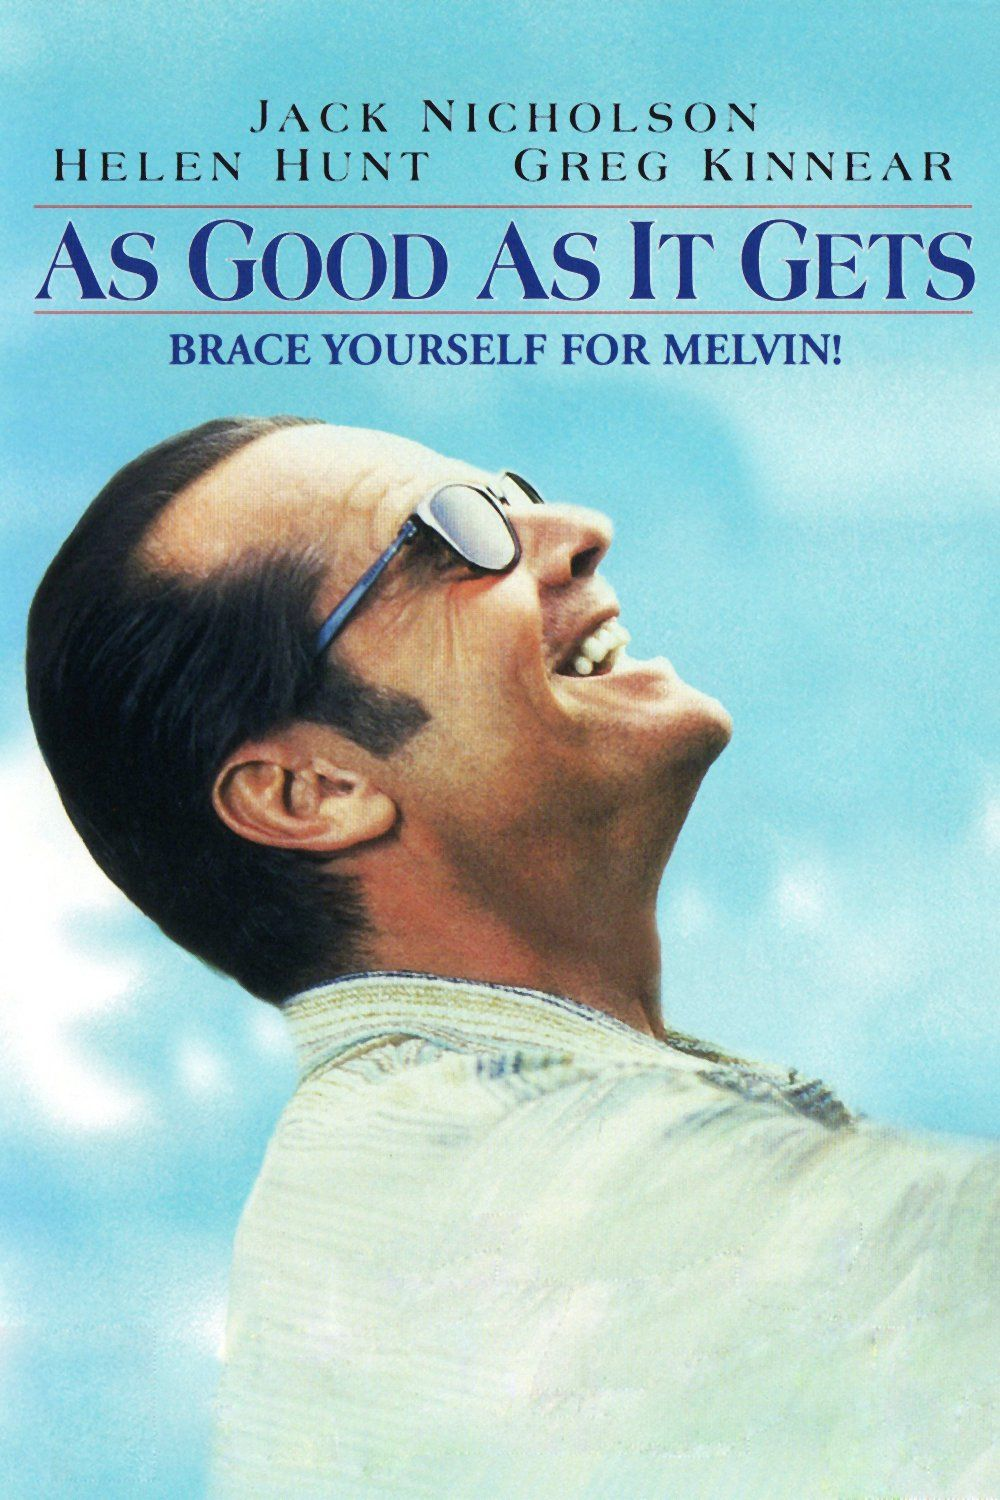 As Good As It Gets 1997 Full Movies Online Free Full Movies Online Free Movies Online